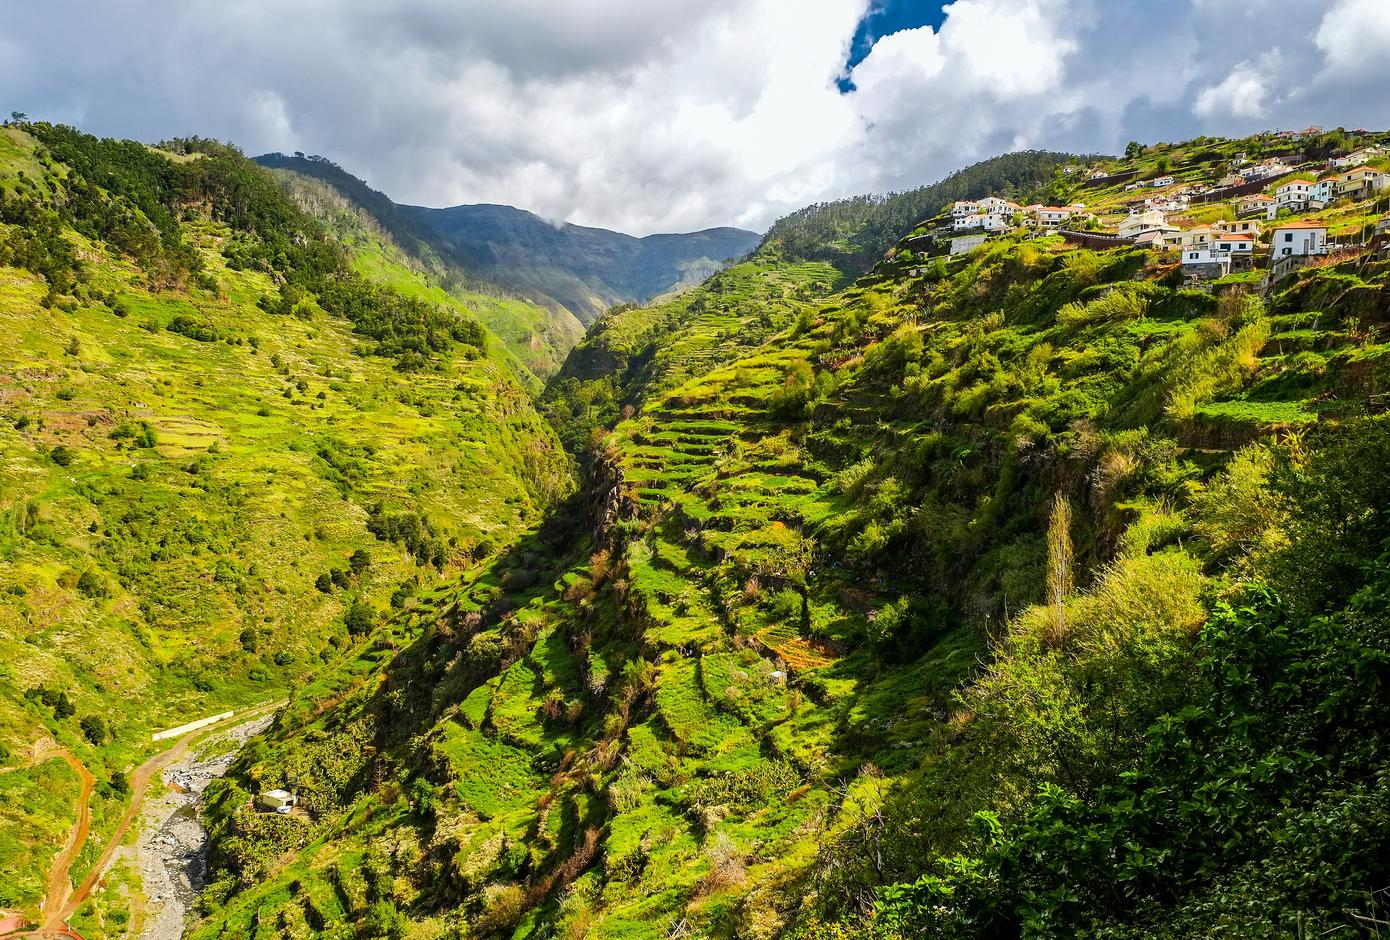 View of the island of Madeira Island's eternal spring, laurel forests and levades.